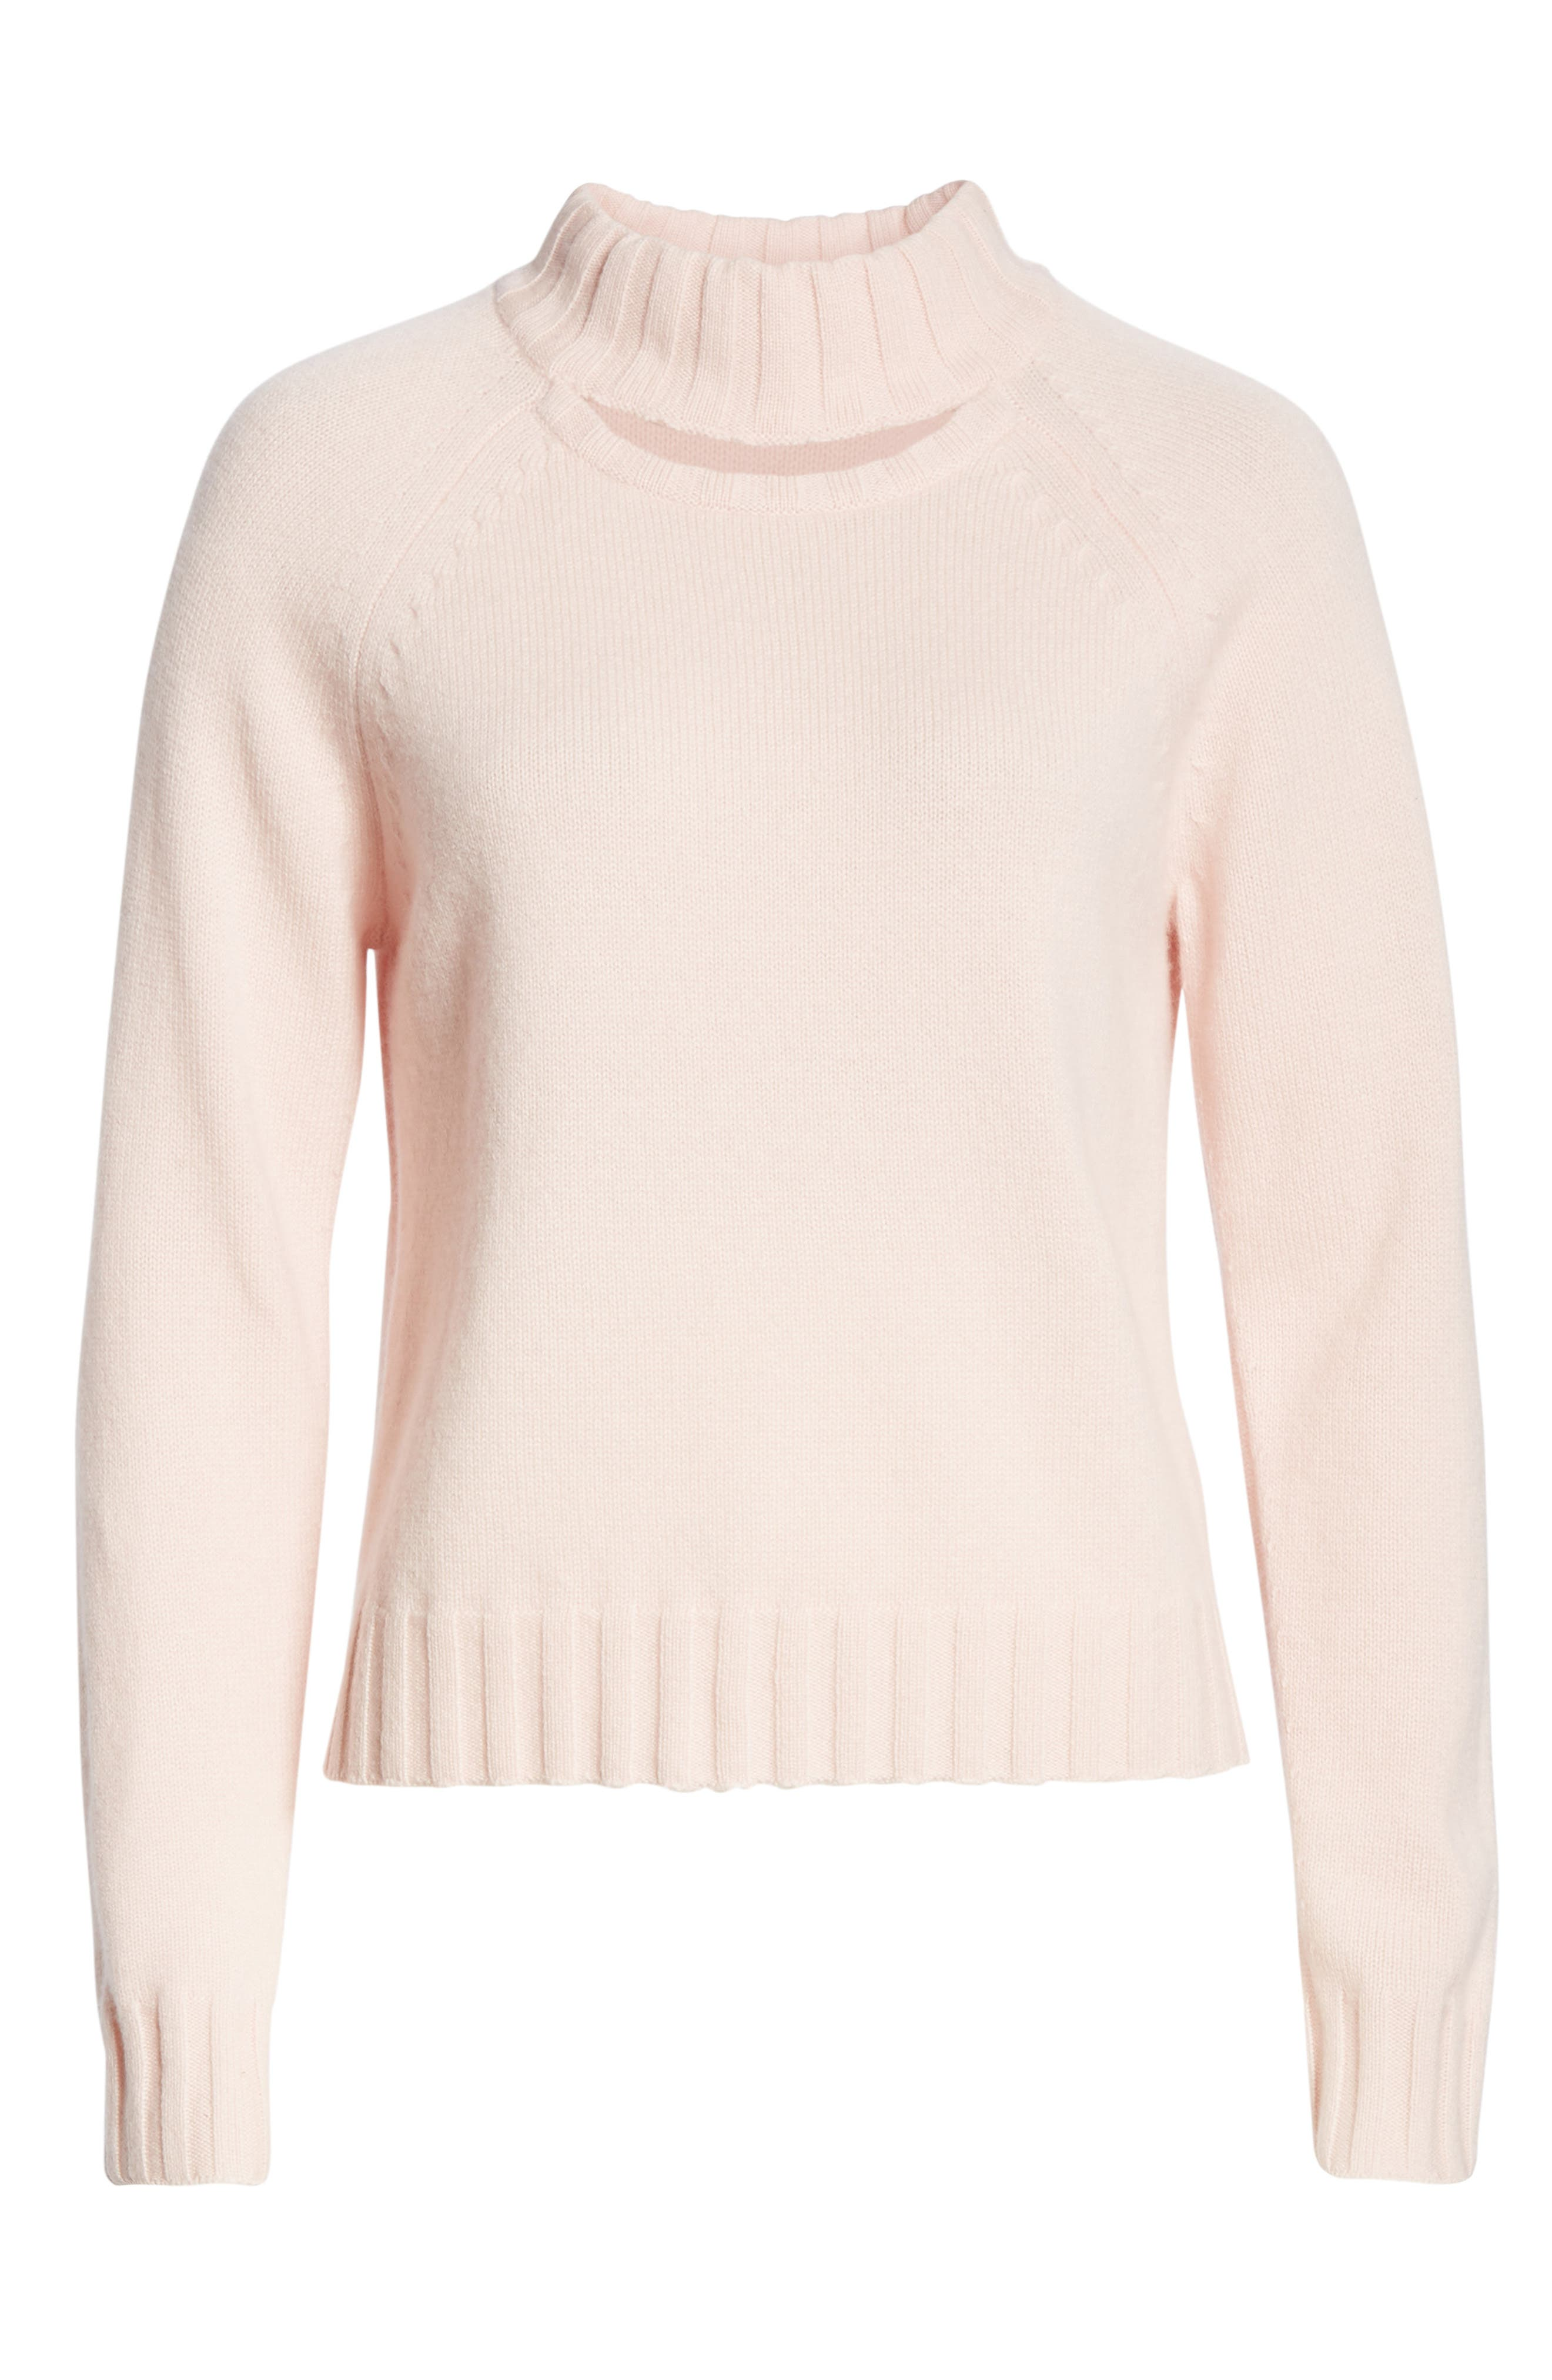 Cutout Detail Mock Neck Wool Cashmere Sweater,                             Alternate thumbnail 6, color,                             CHARM PINK